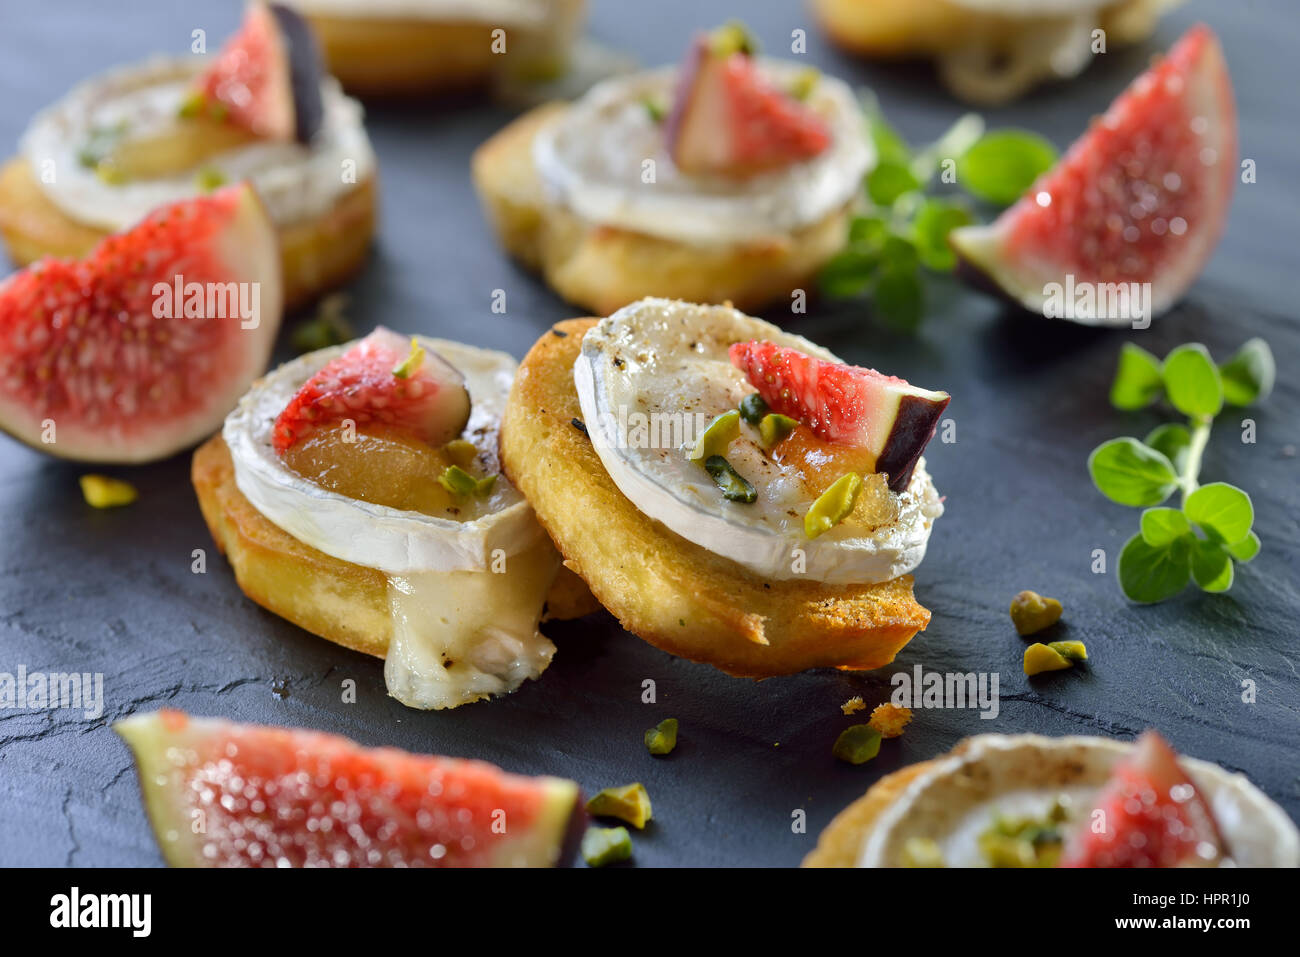 Baked spicy crostini appetizers with goat cheese, fig mustard, pistachios and fresh figs served on a slate board - Stock Image